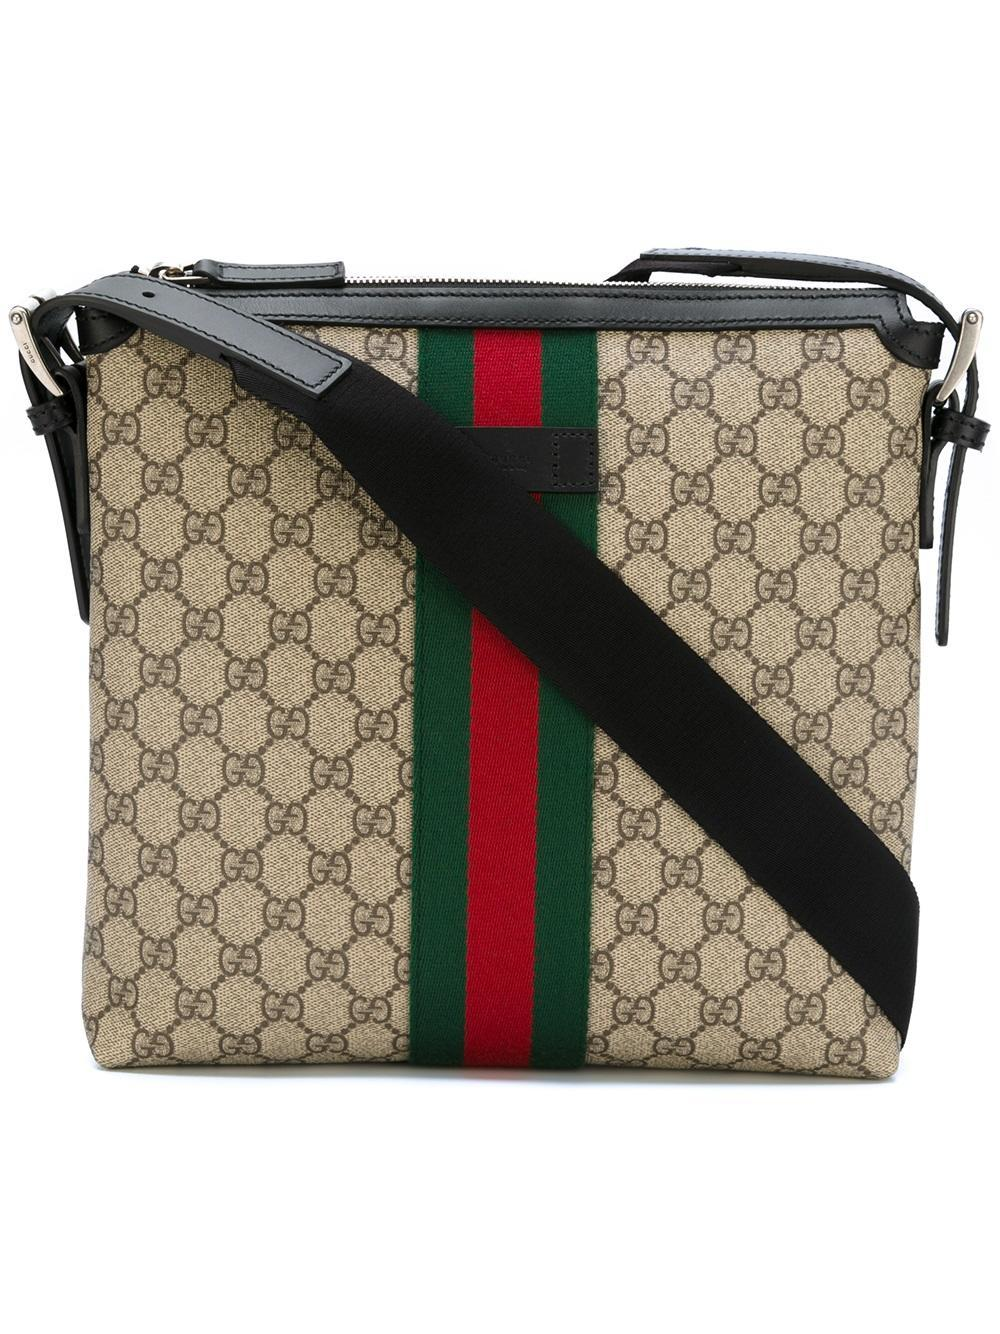 107f500e784 Gucci Gg Supreme Messenger Bag With Web Detail in Black for Men - Lyst